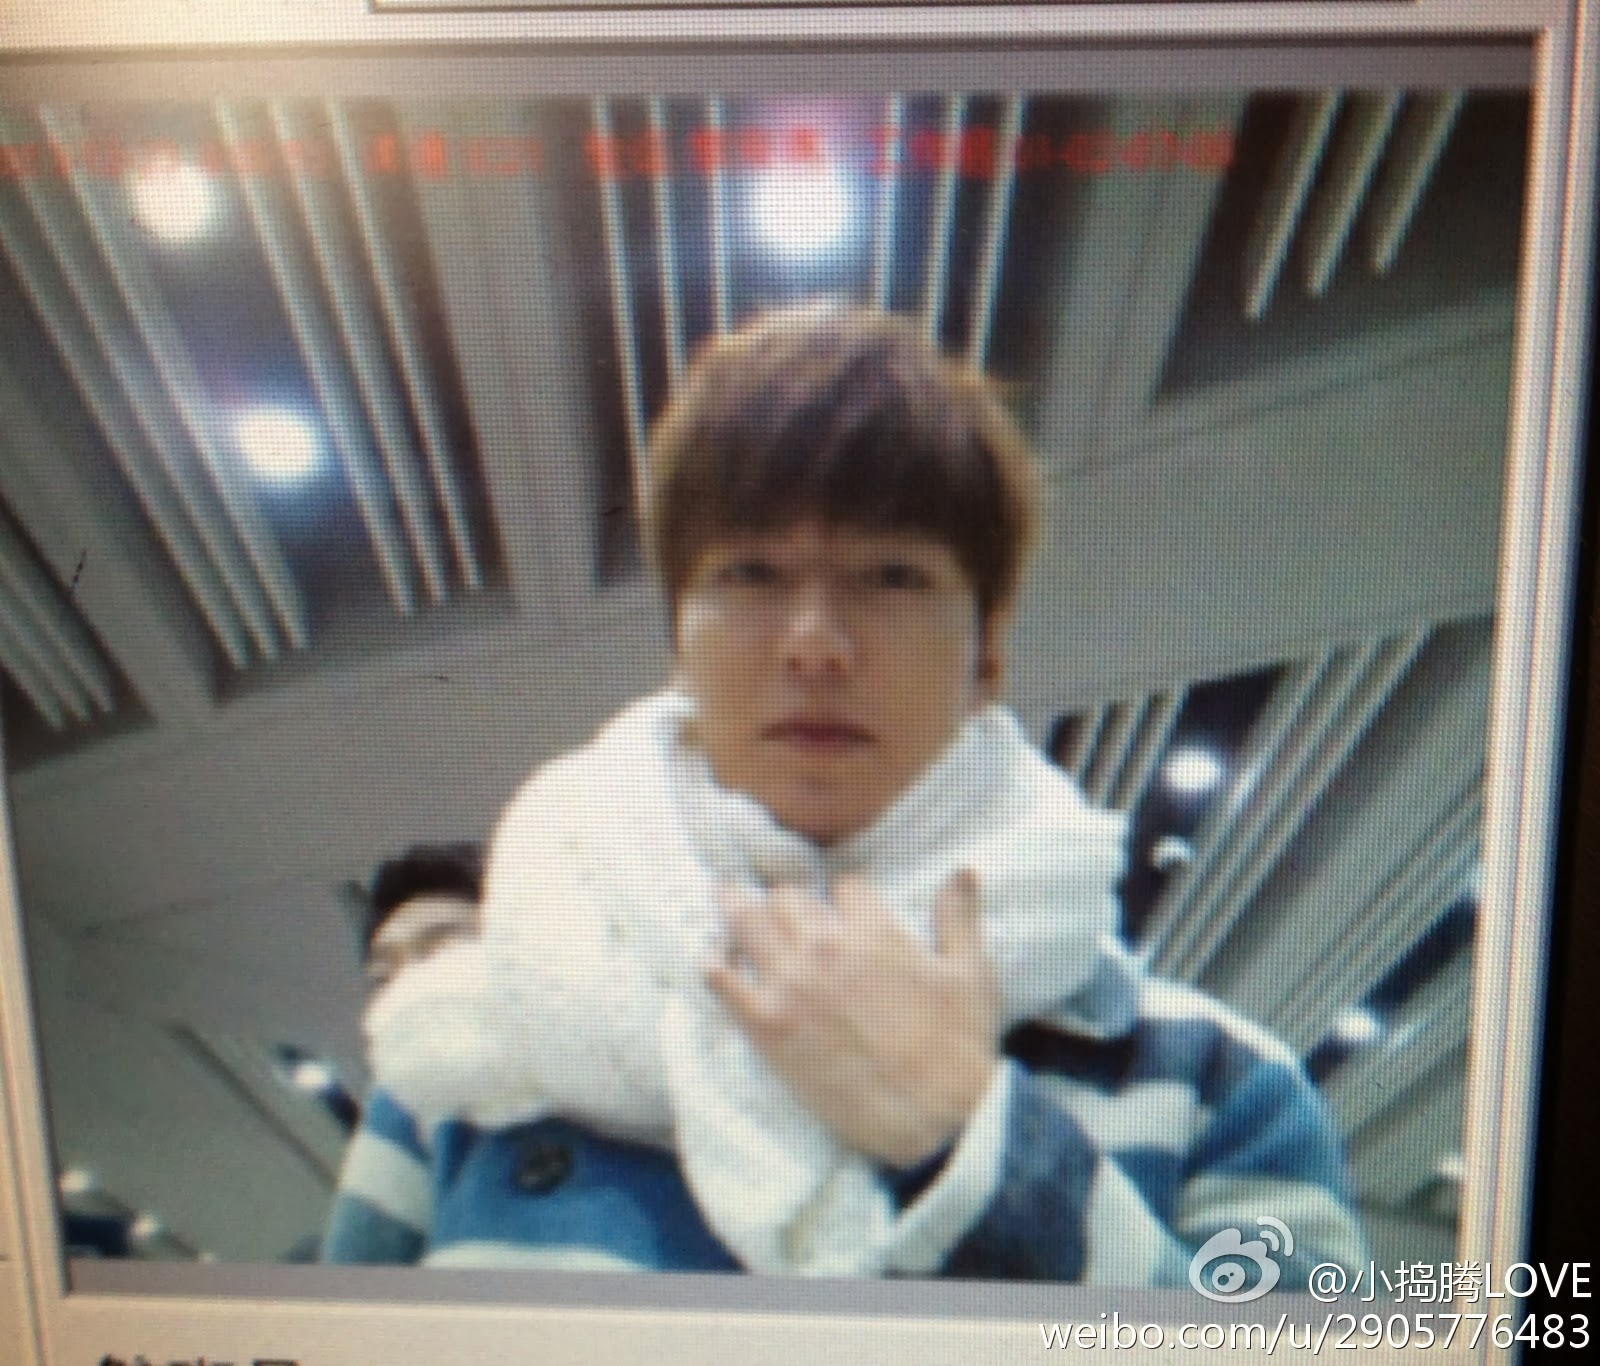 the imaginary world of monika lee min ho at beijing capital arrival gimhae international airport 23 12 2013 doing commercial film